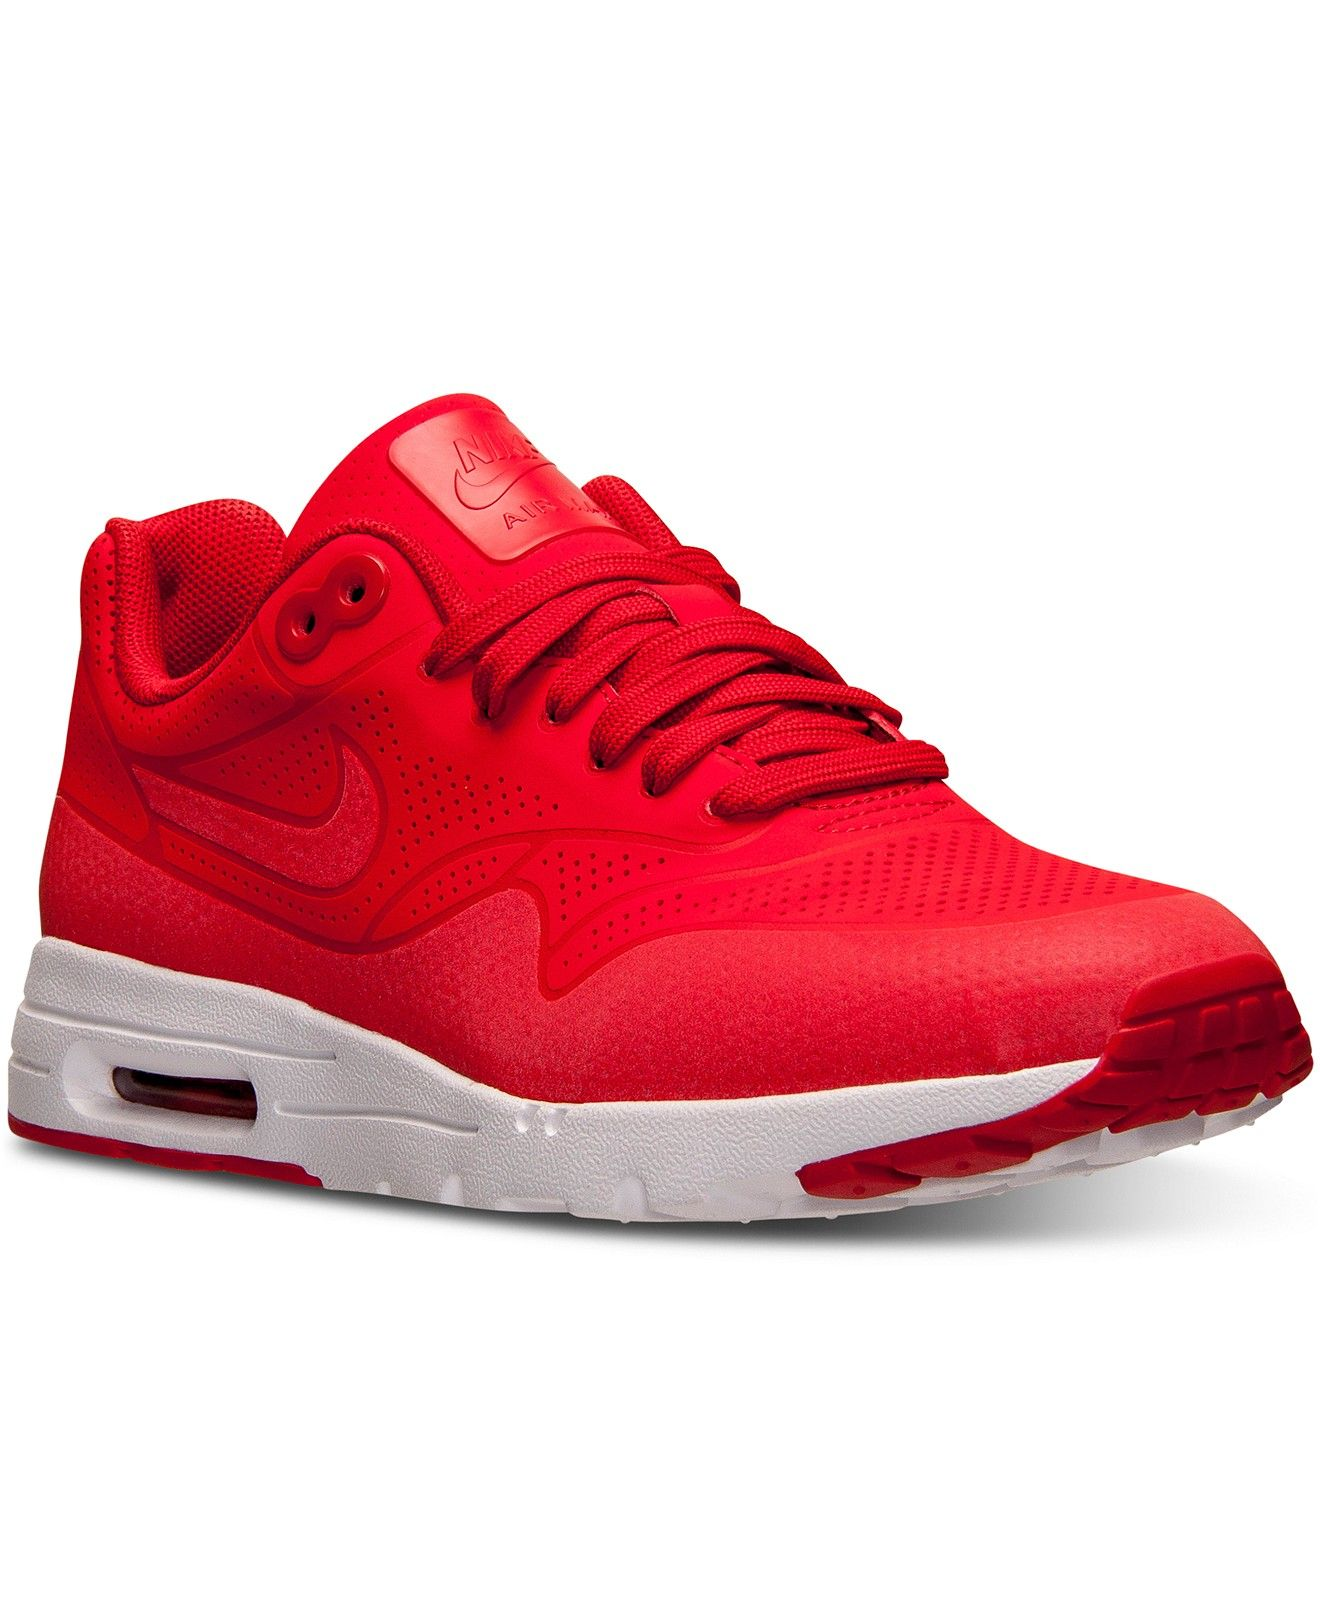 Nike Women's Air Max 1 Ultra Moire Running Sneakers from